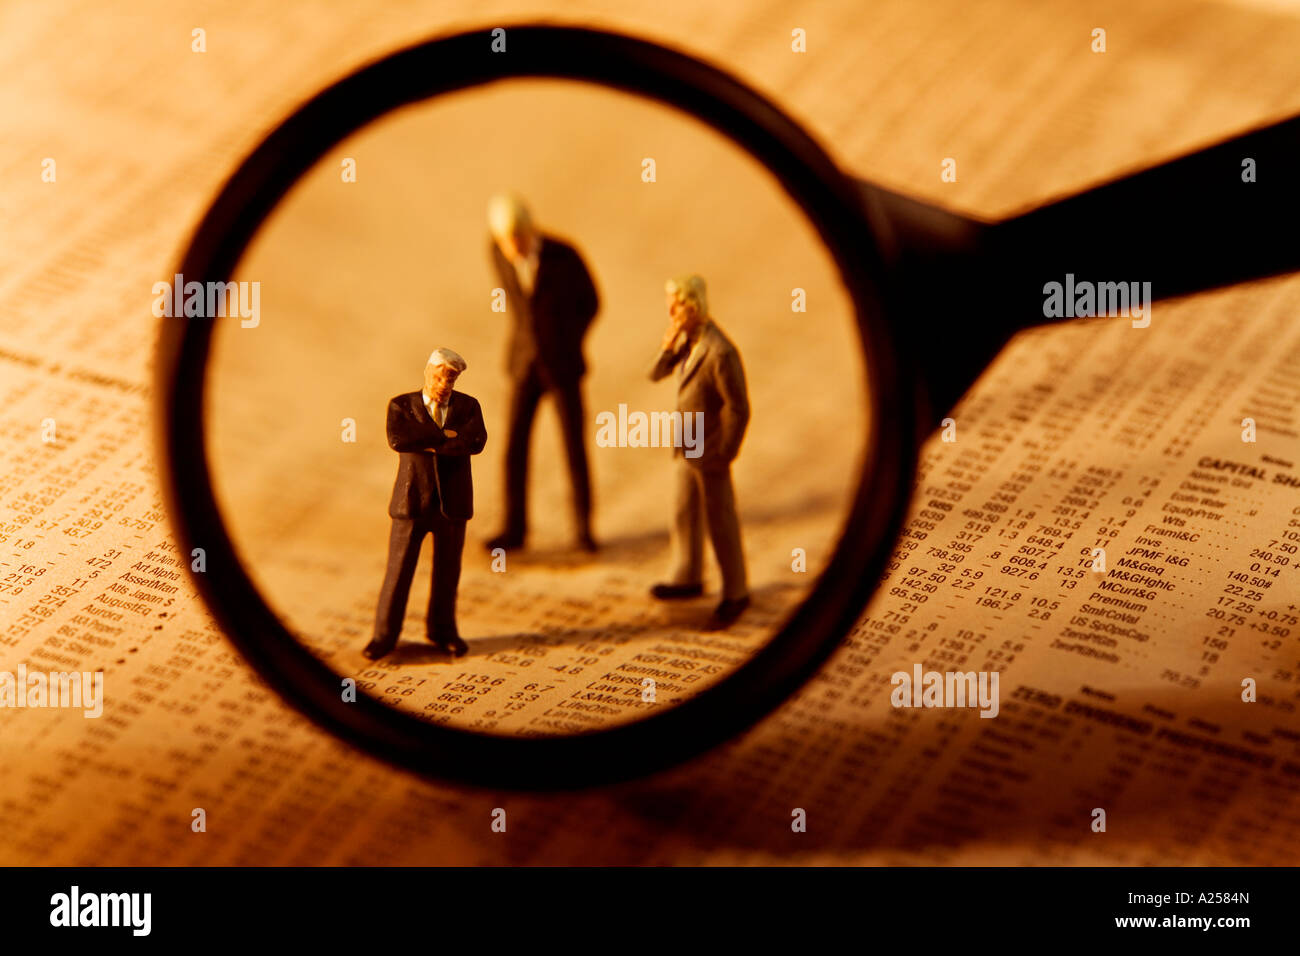 Miniature businessmen seen through magnifying glass standing on financial newspaper - Stock Image